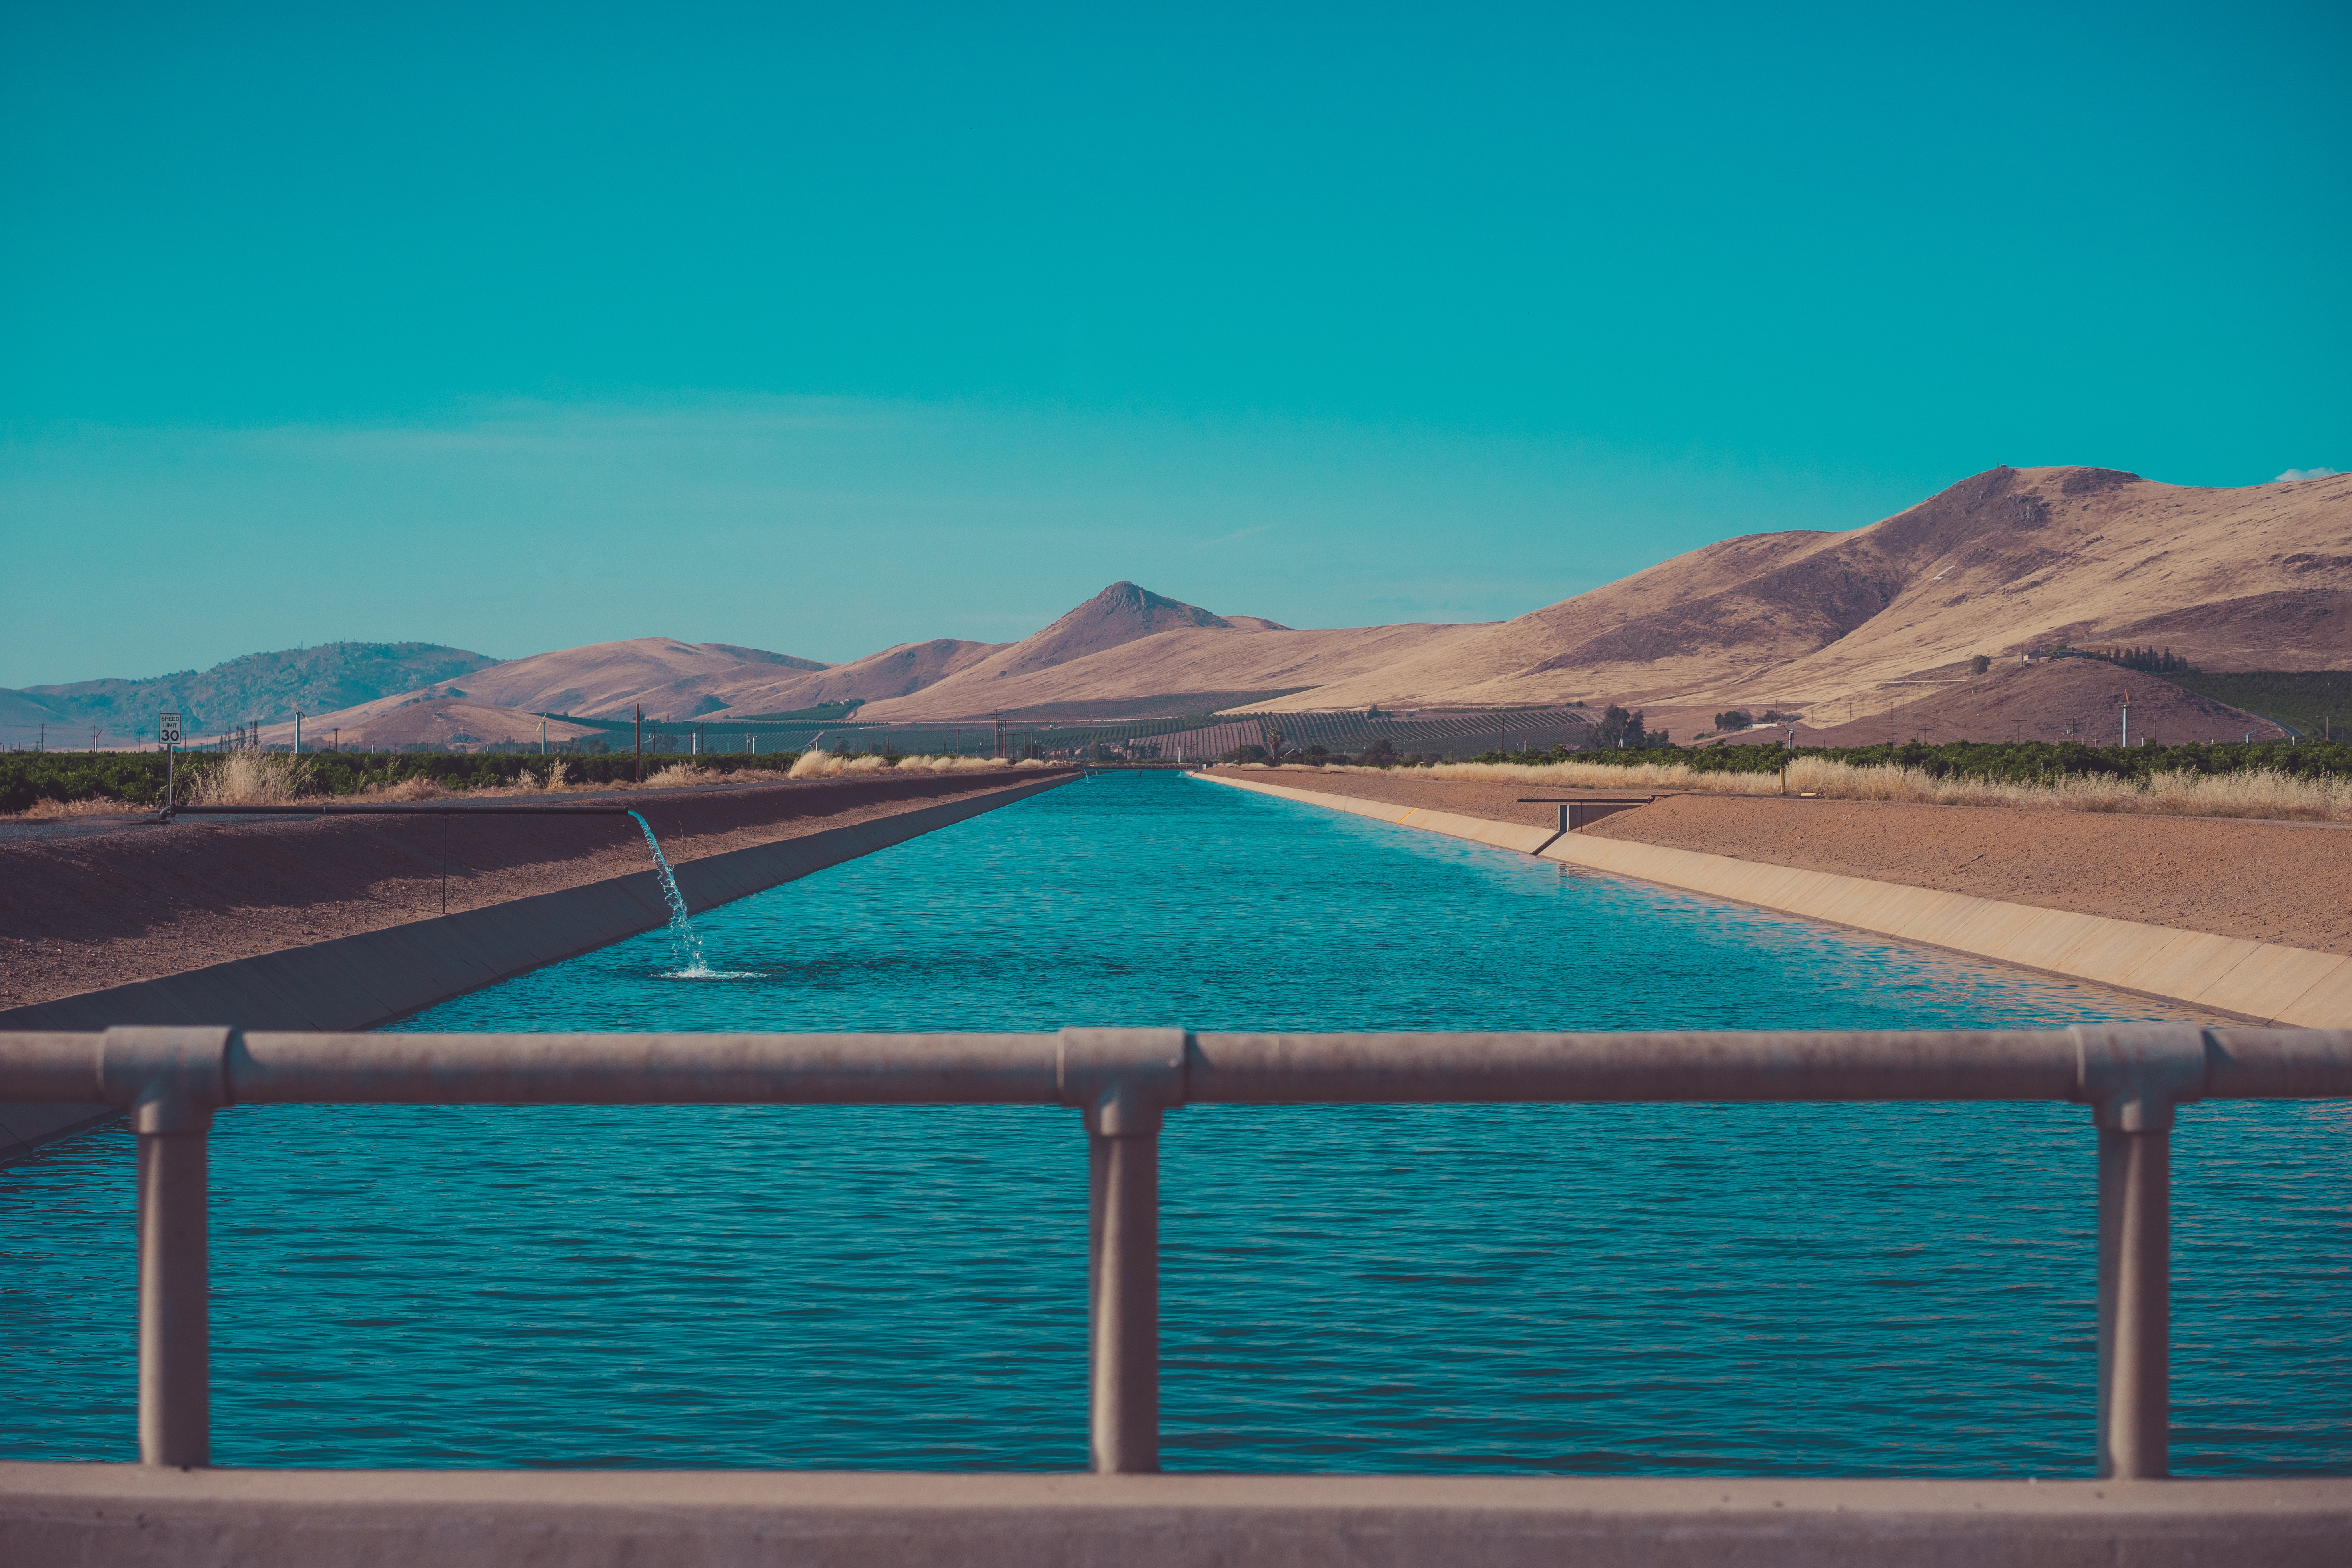 Canal bridge view of a blue water reservoir in the desert